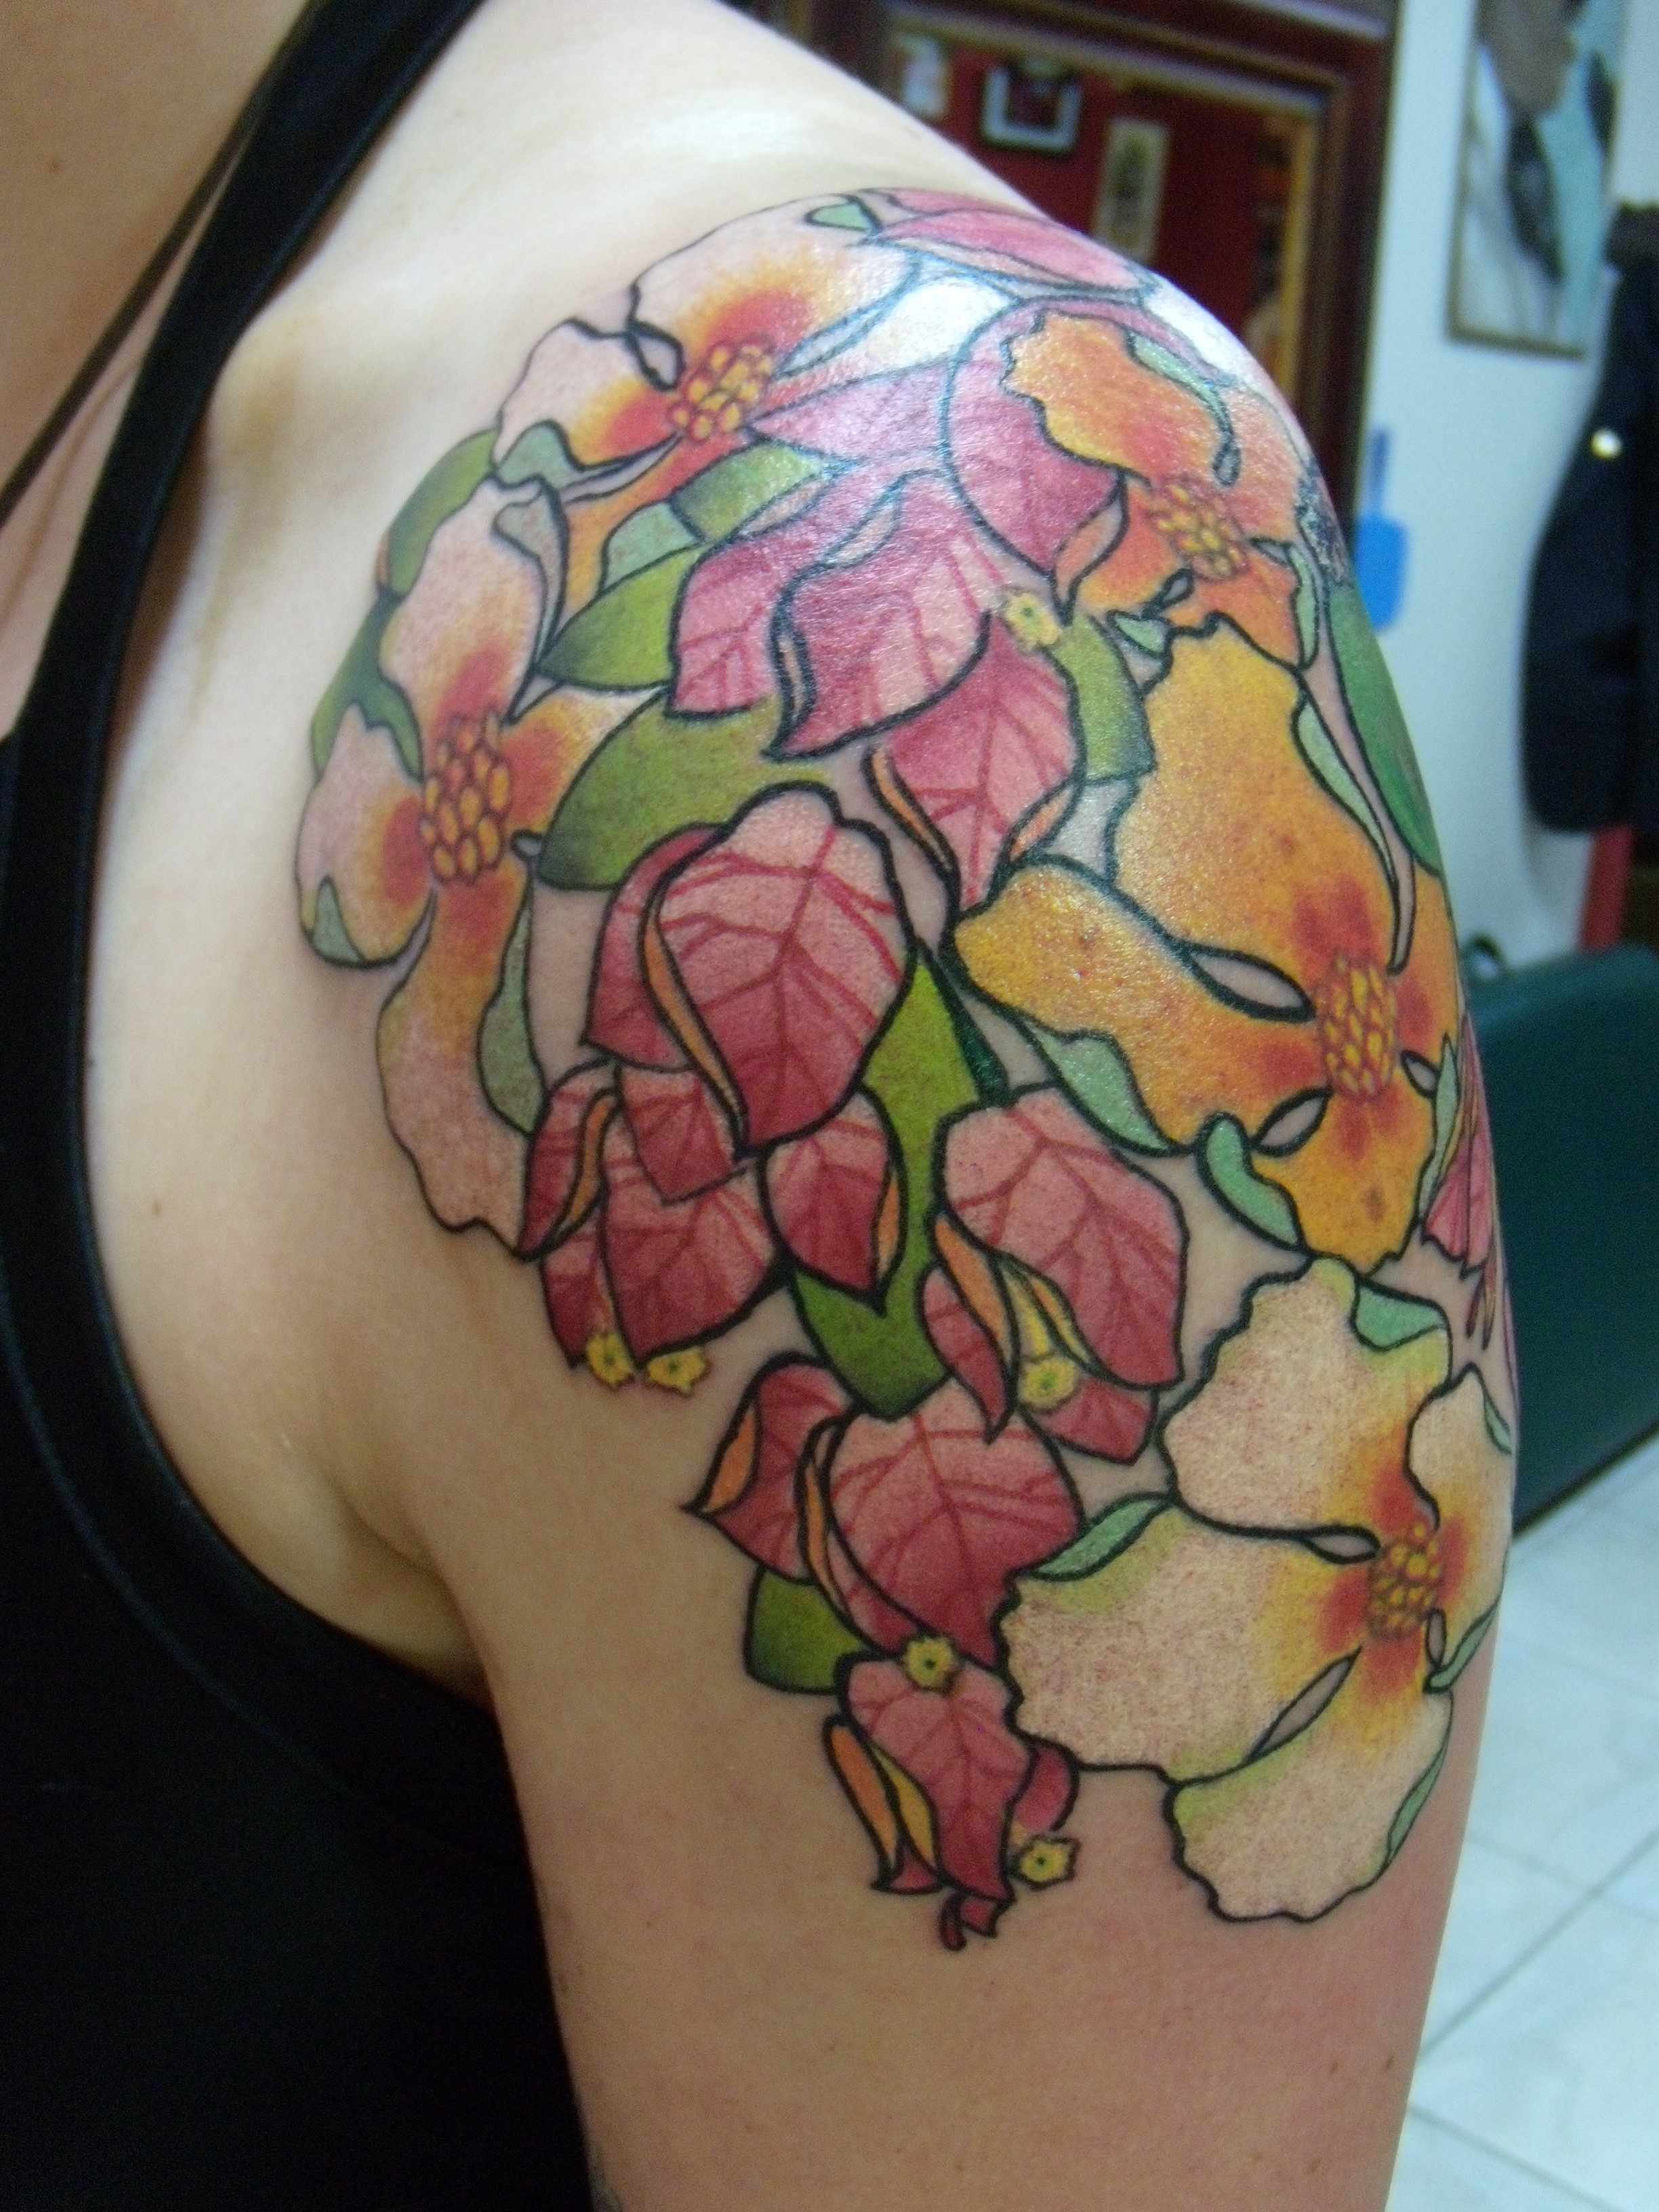 Flower Shoulder Tattoo Designs: Flower Tattoos Designs, Ideas And Meaning